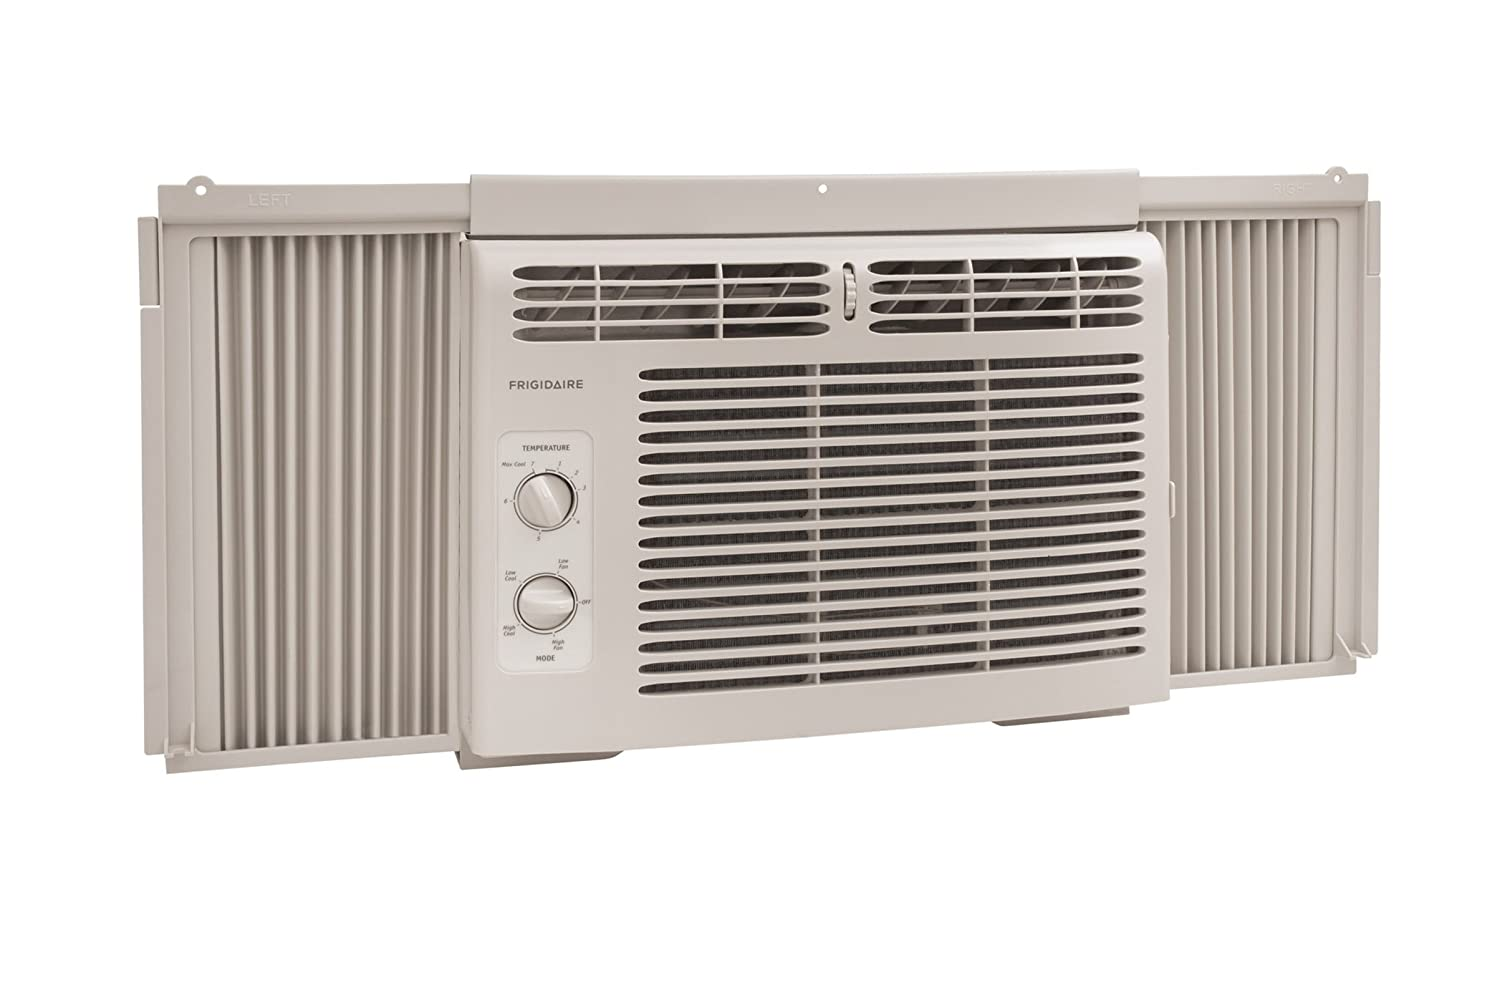 Small Bedroom Air Conditioner Amazoncom Frigidaire Fra052xt7 5000 Btu Mini Window Air